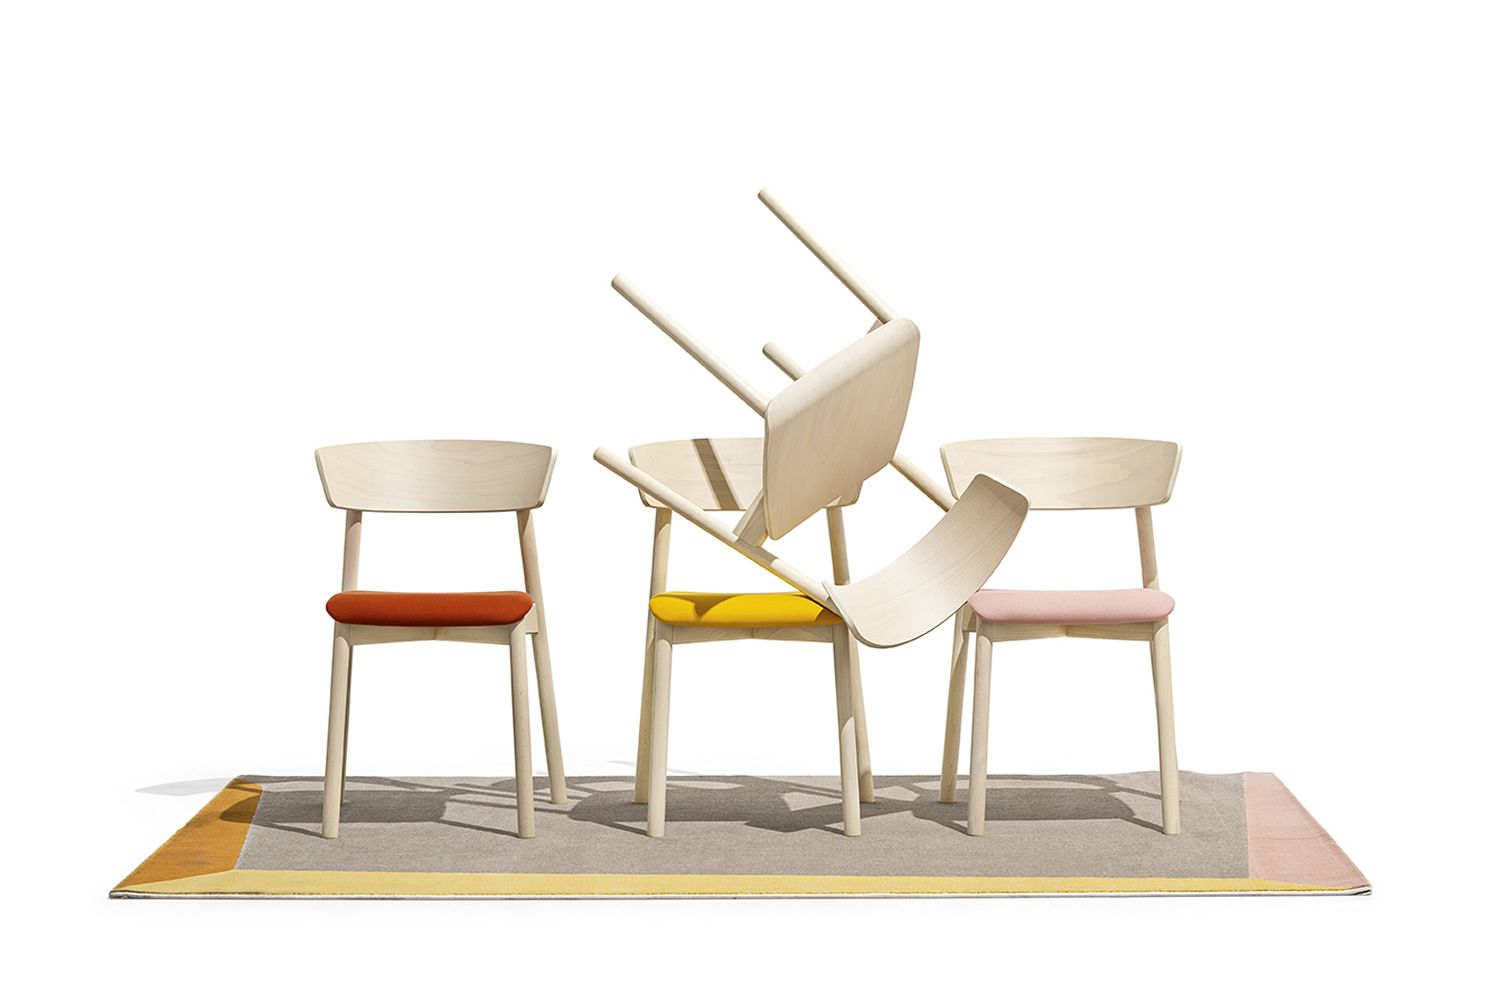 Tapì rug by Connubia matching with Clelia chairs